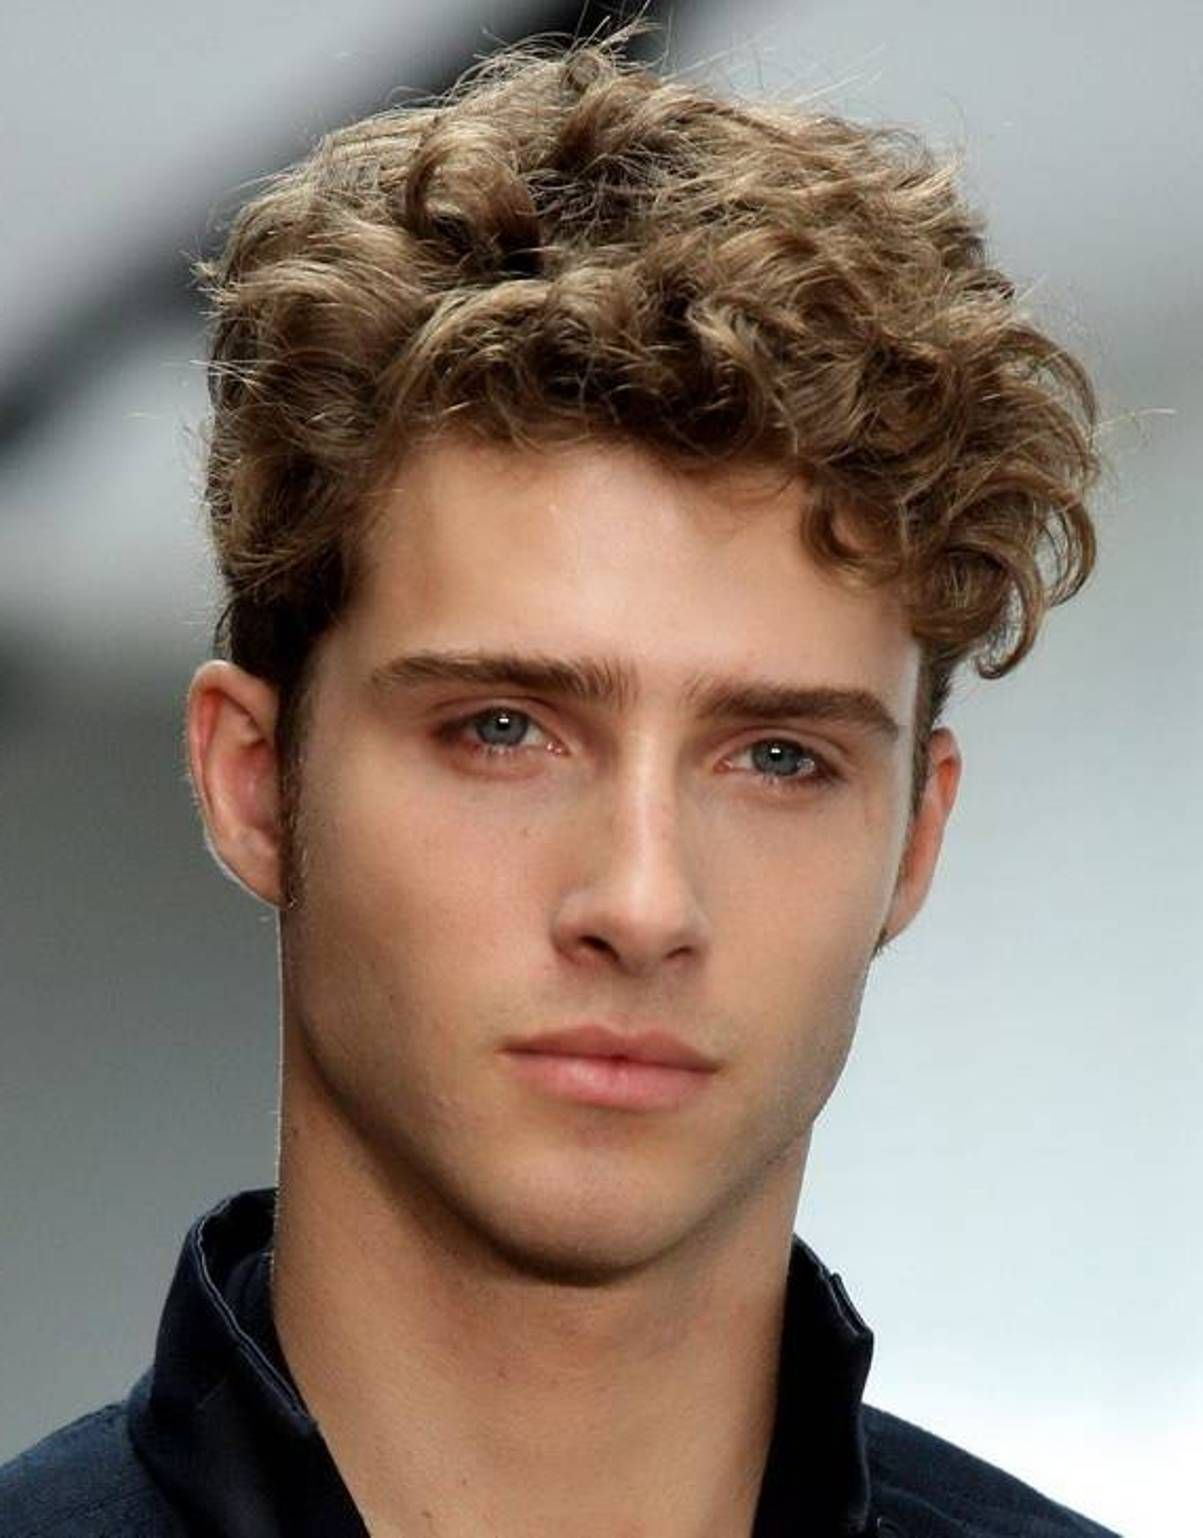 Curly Hairstyles Men Pleasing Size Matters 60's Hair Trends That Rocked The Nation  Hair Styles